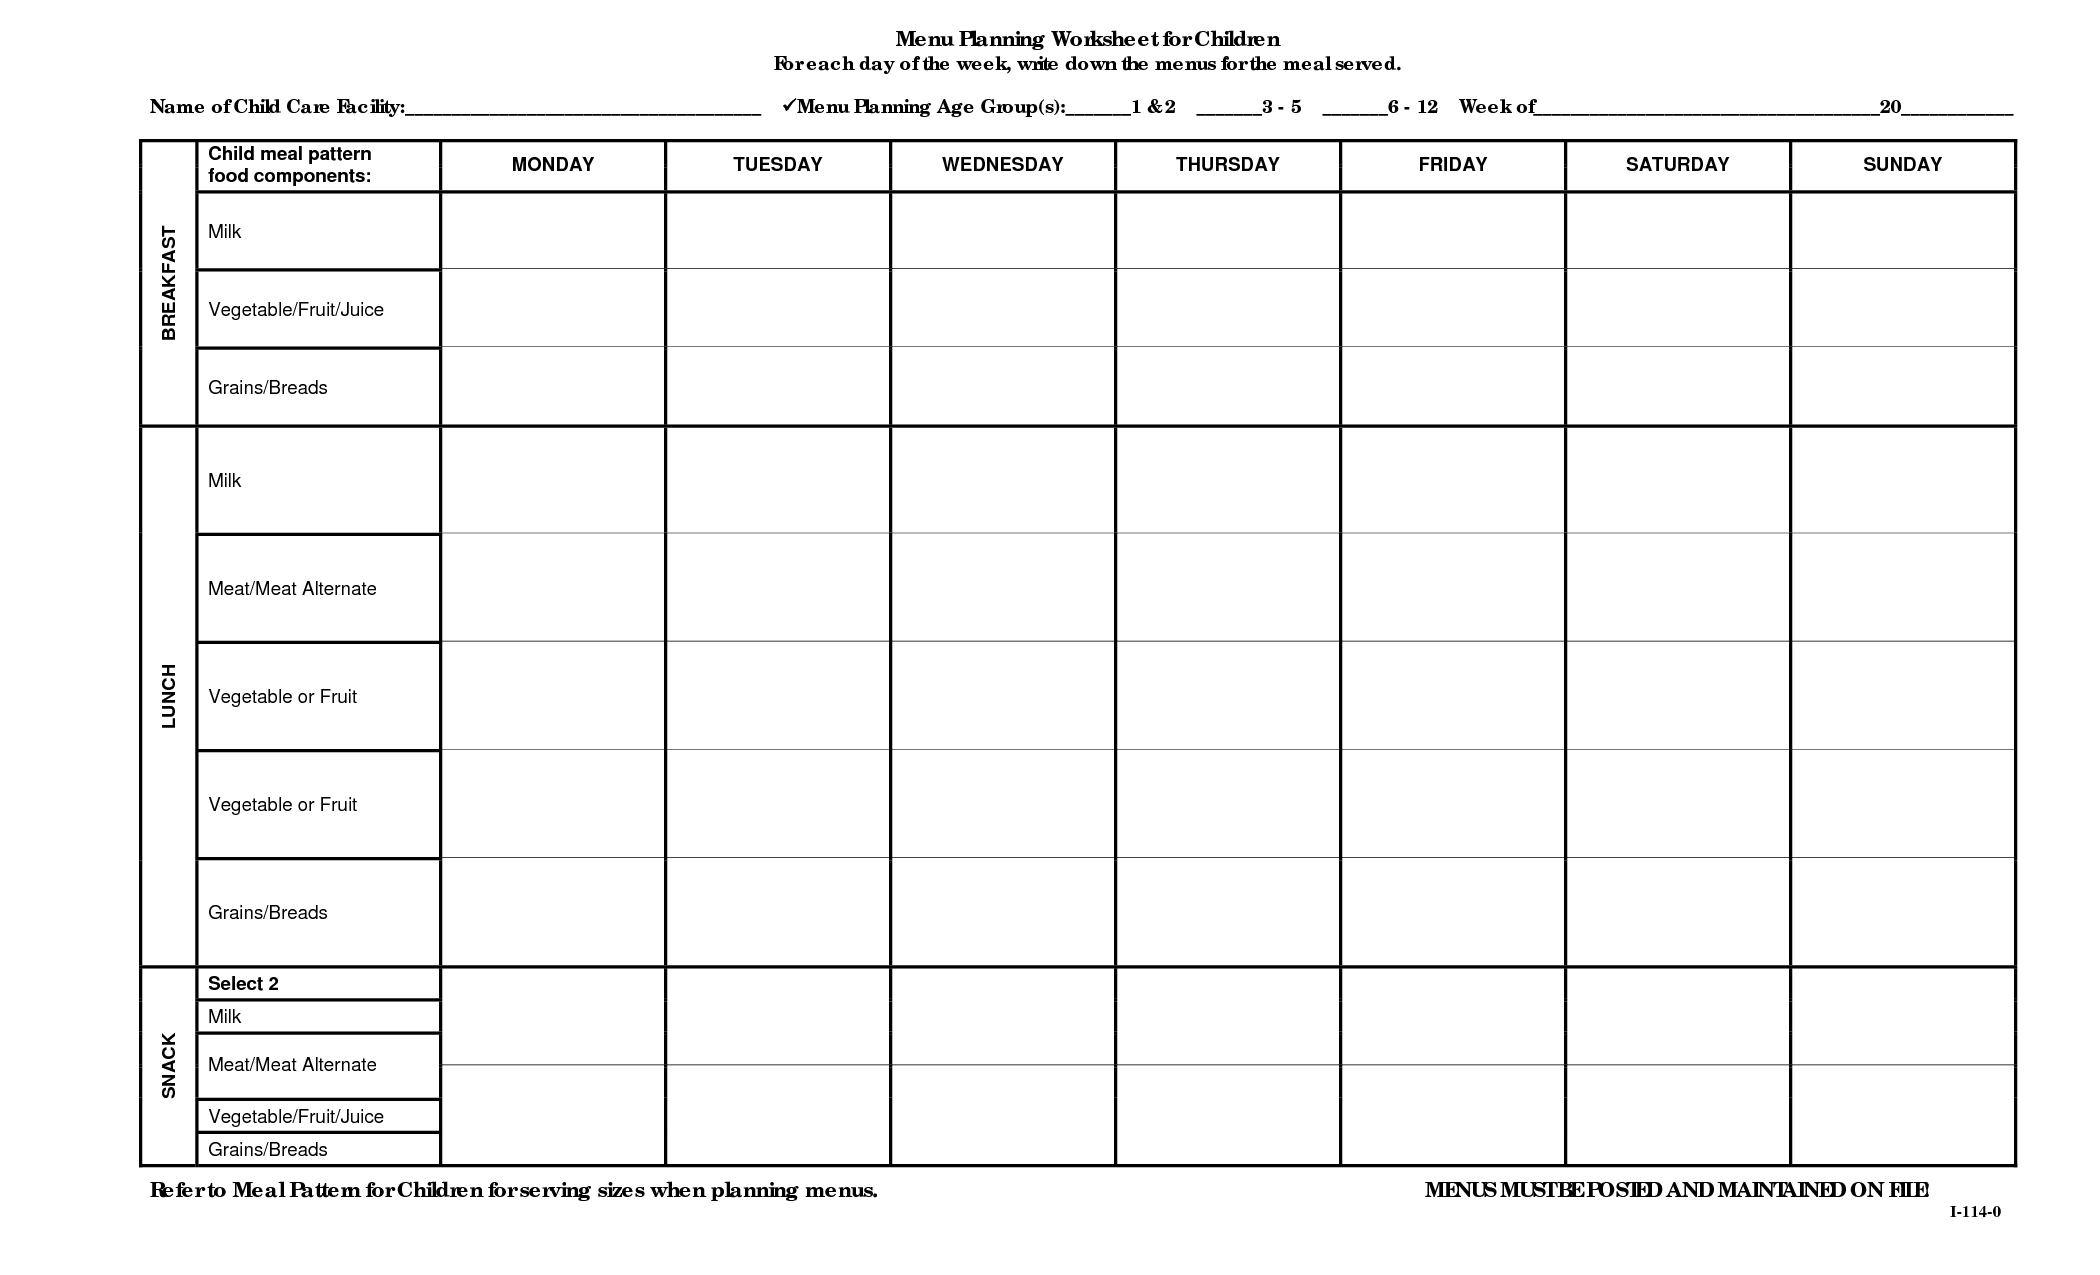 11 Best Images Of Usda Menu Planning Worksheet